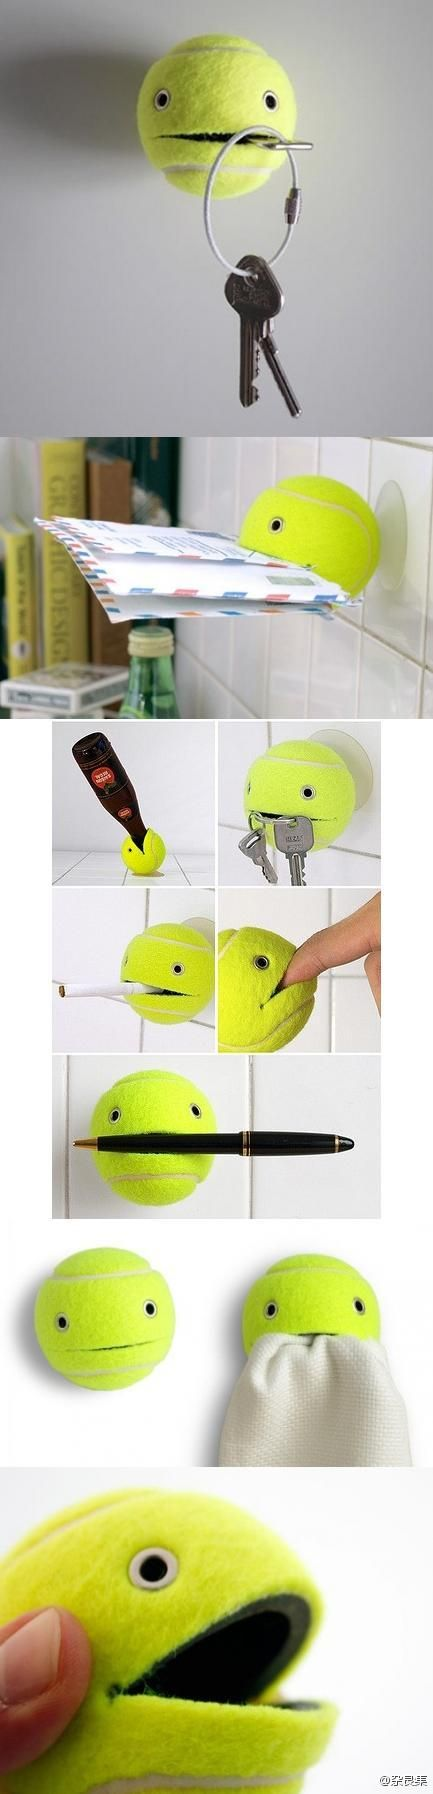 Re-use old tennis balls...